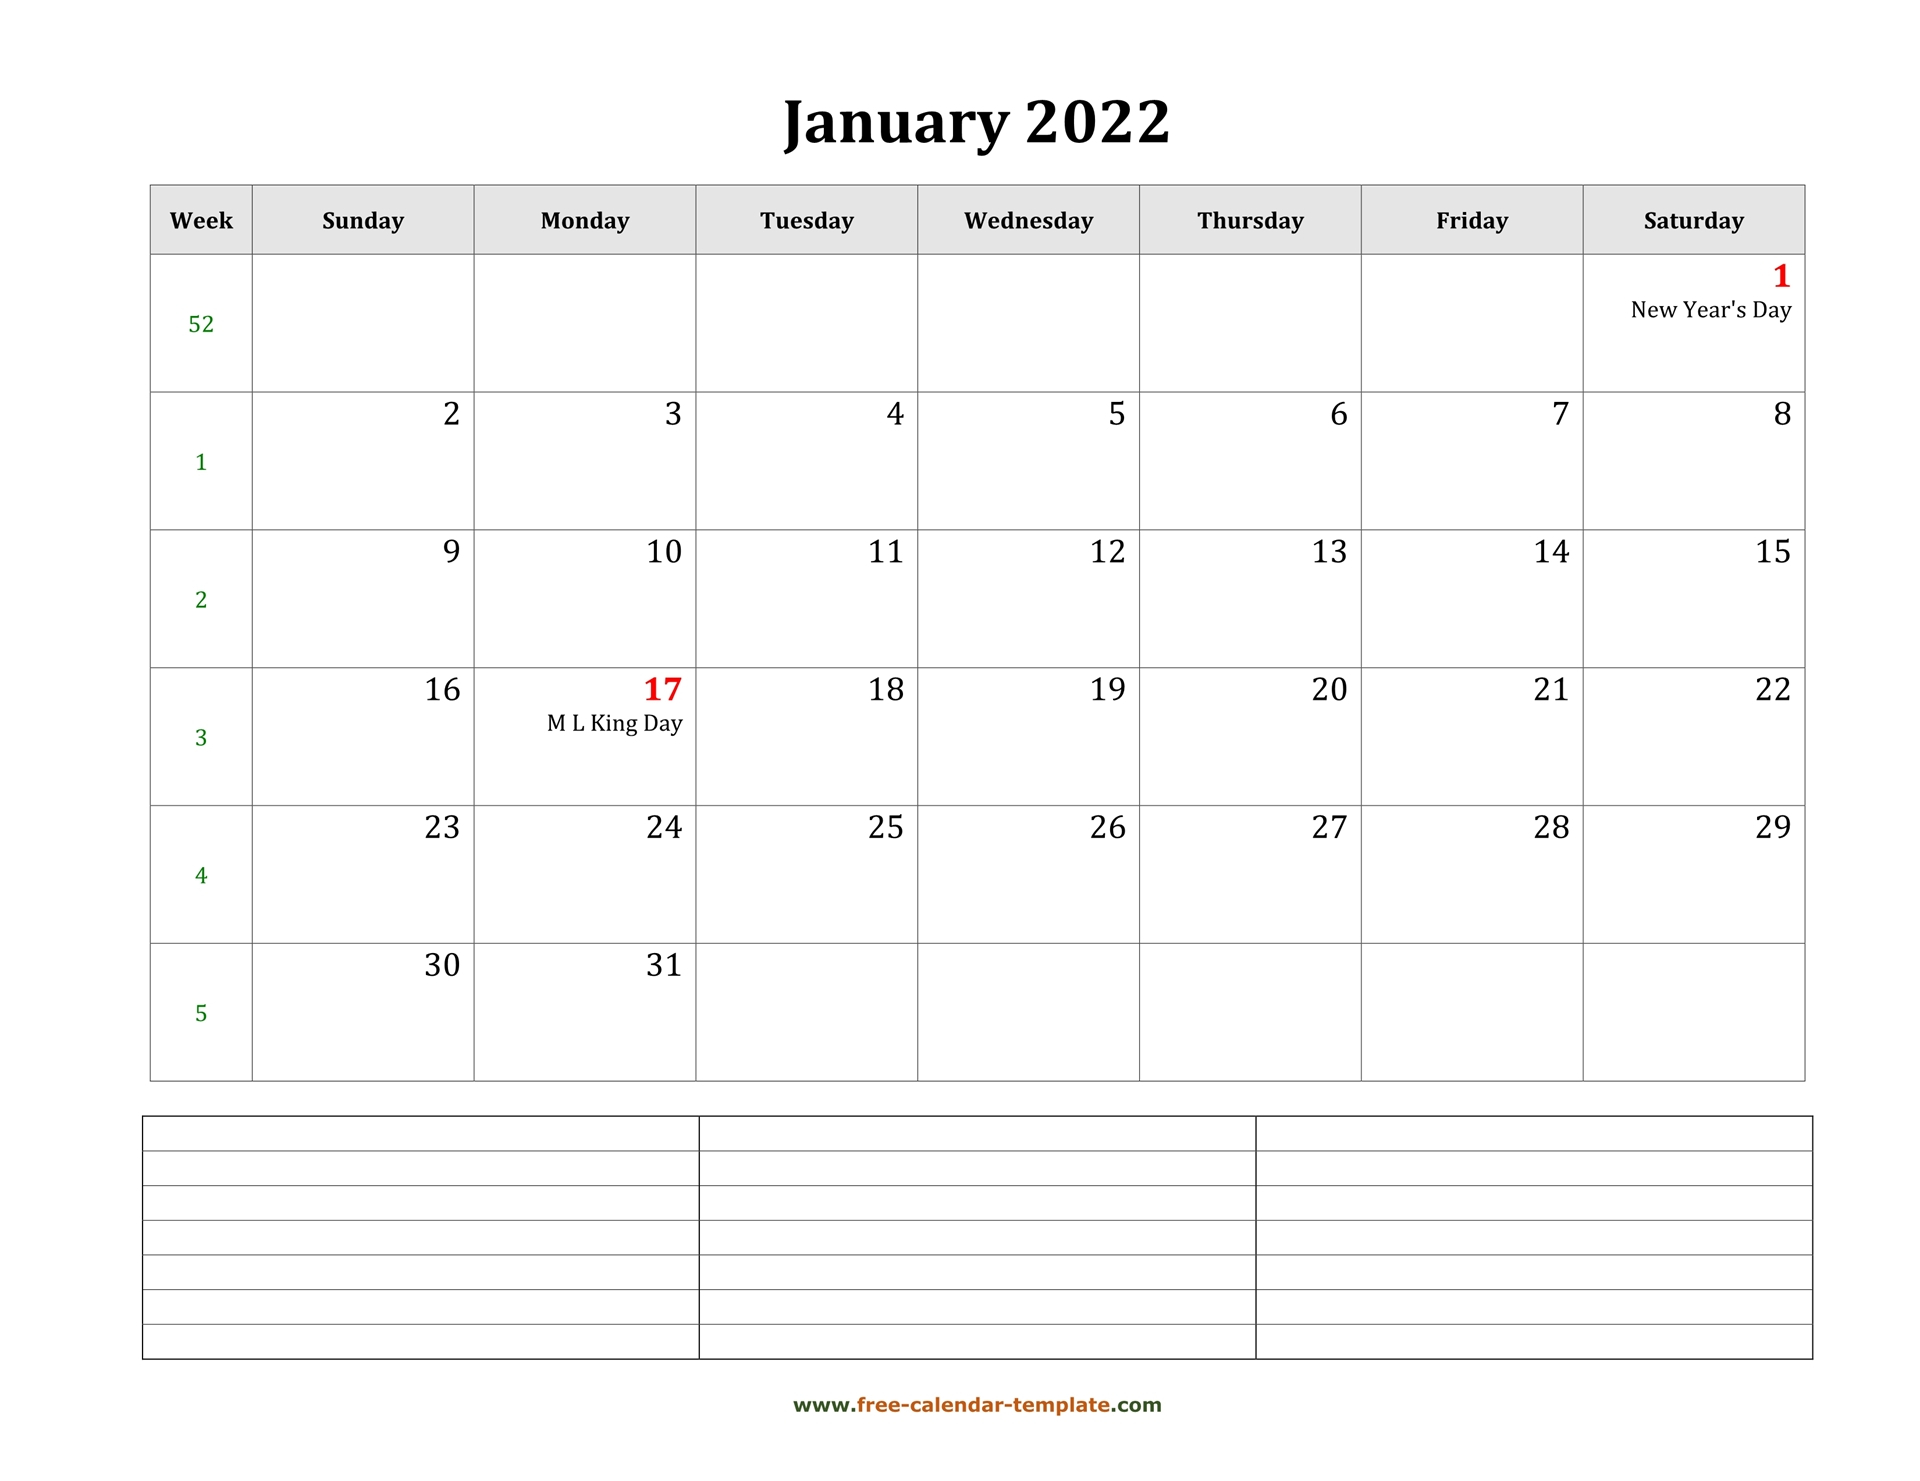 2022 Printable January Calendar With Space For With Free Printable Calendar January 2022 With Holidays